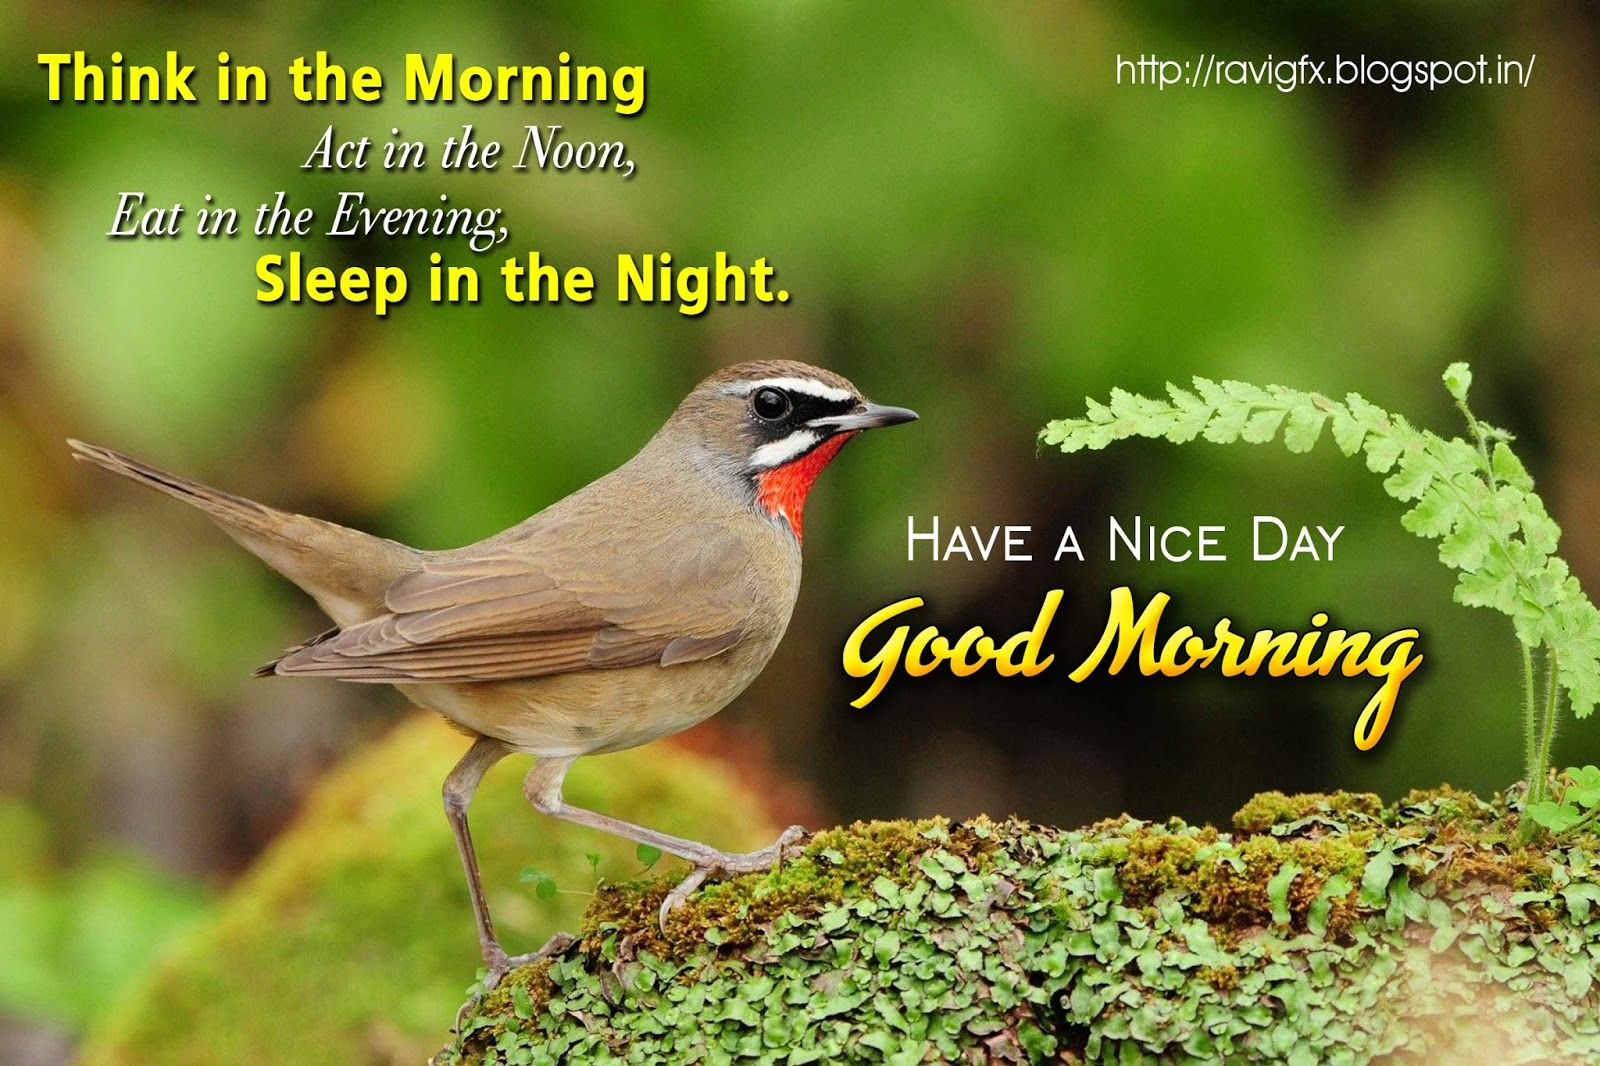 Good Morning Quotes Messages Images Pics Sms Pictures Hd Wallpapers Free Download Birds Cute Birds Good Morning Image Quotes